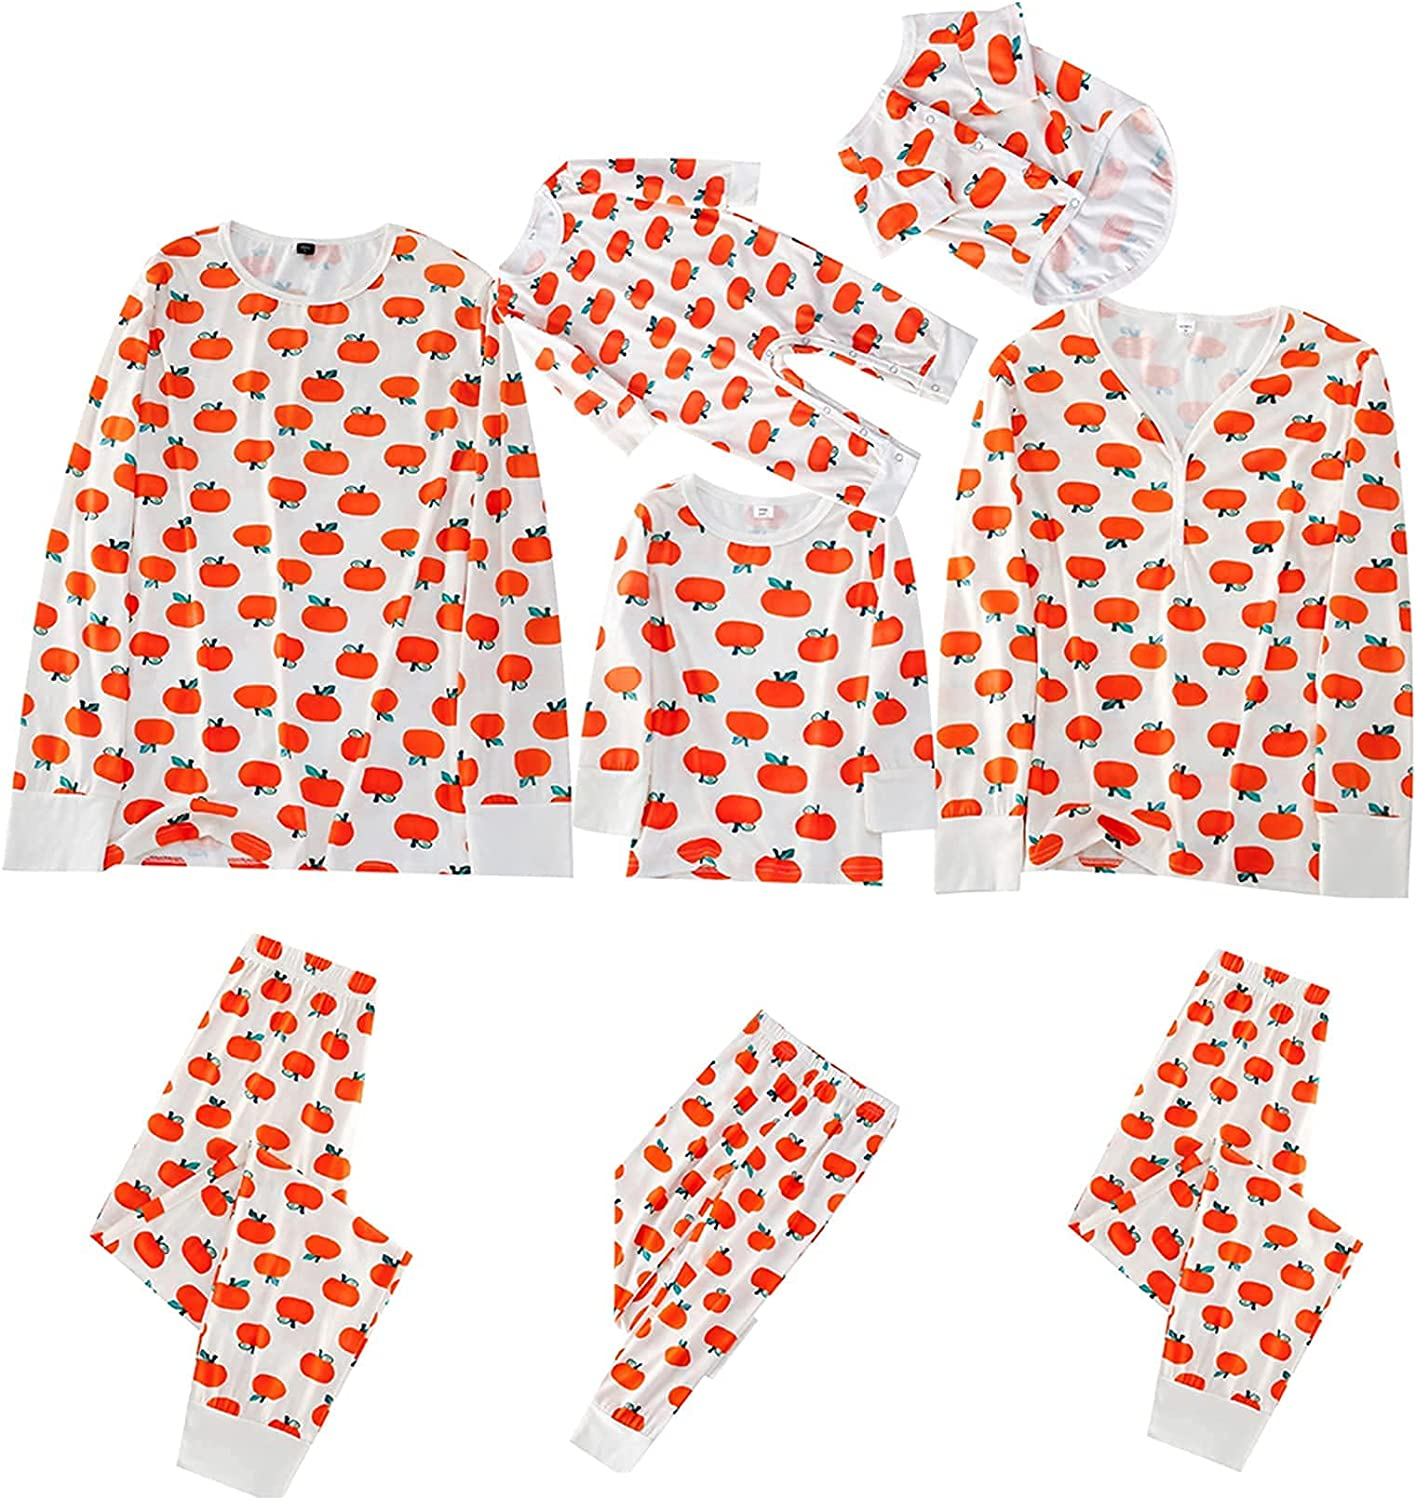 Family Matching Pajamas Halloween Super sale period limited Outfit Long Pri Sleeve Pumpkin low-pricing